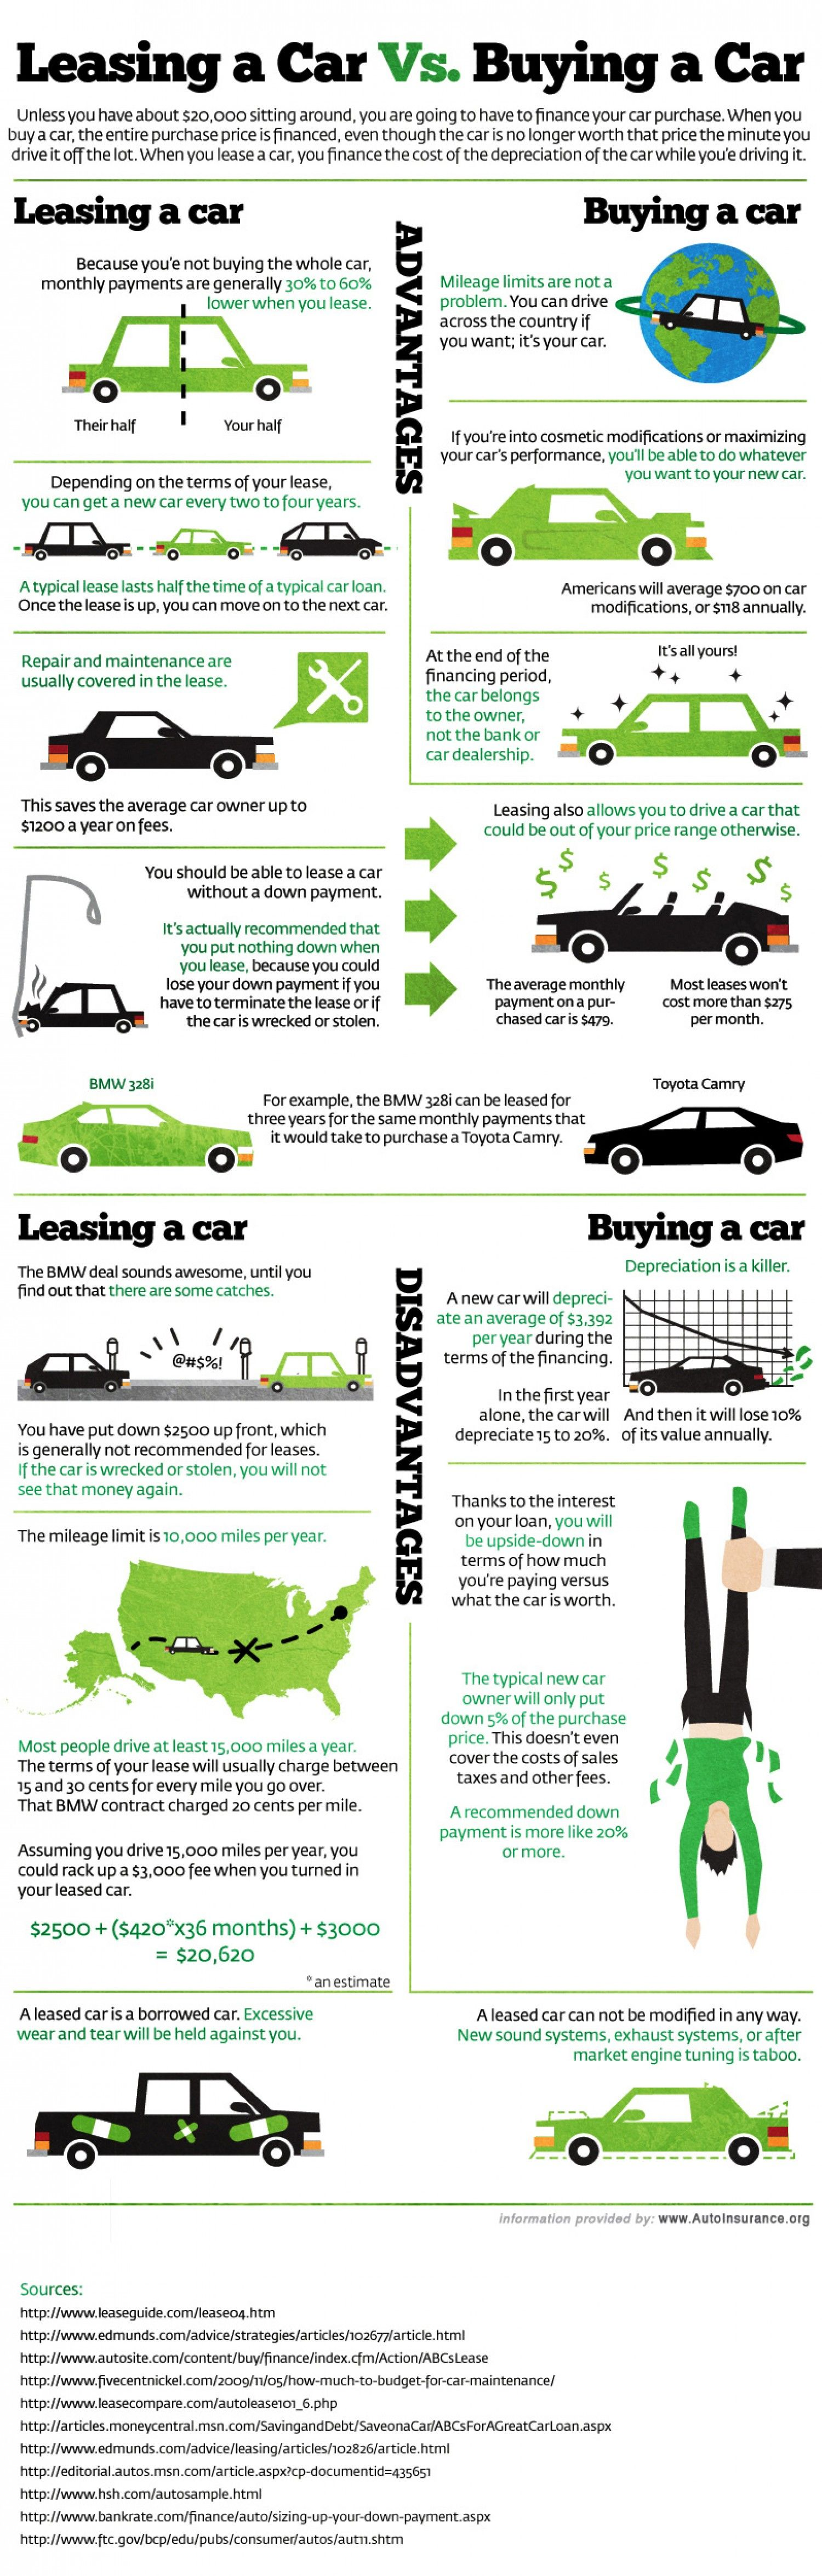 Leasing A Car Vs Buying A Car Visual Ly Car Purchase Car Buying Car Lease